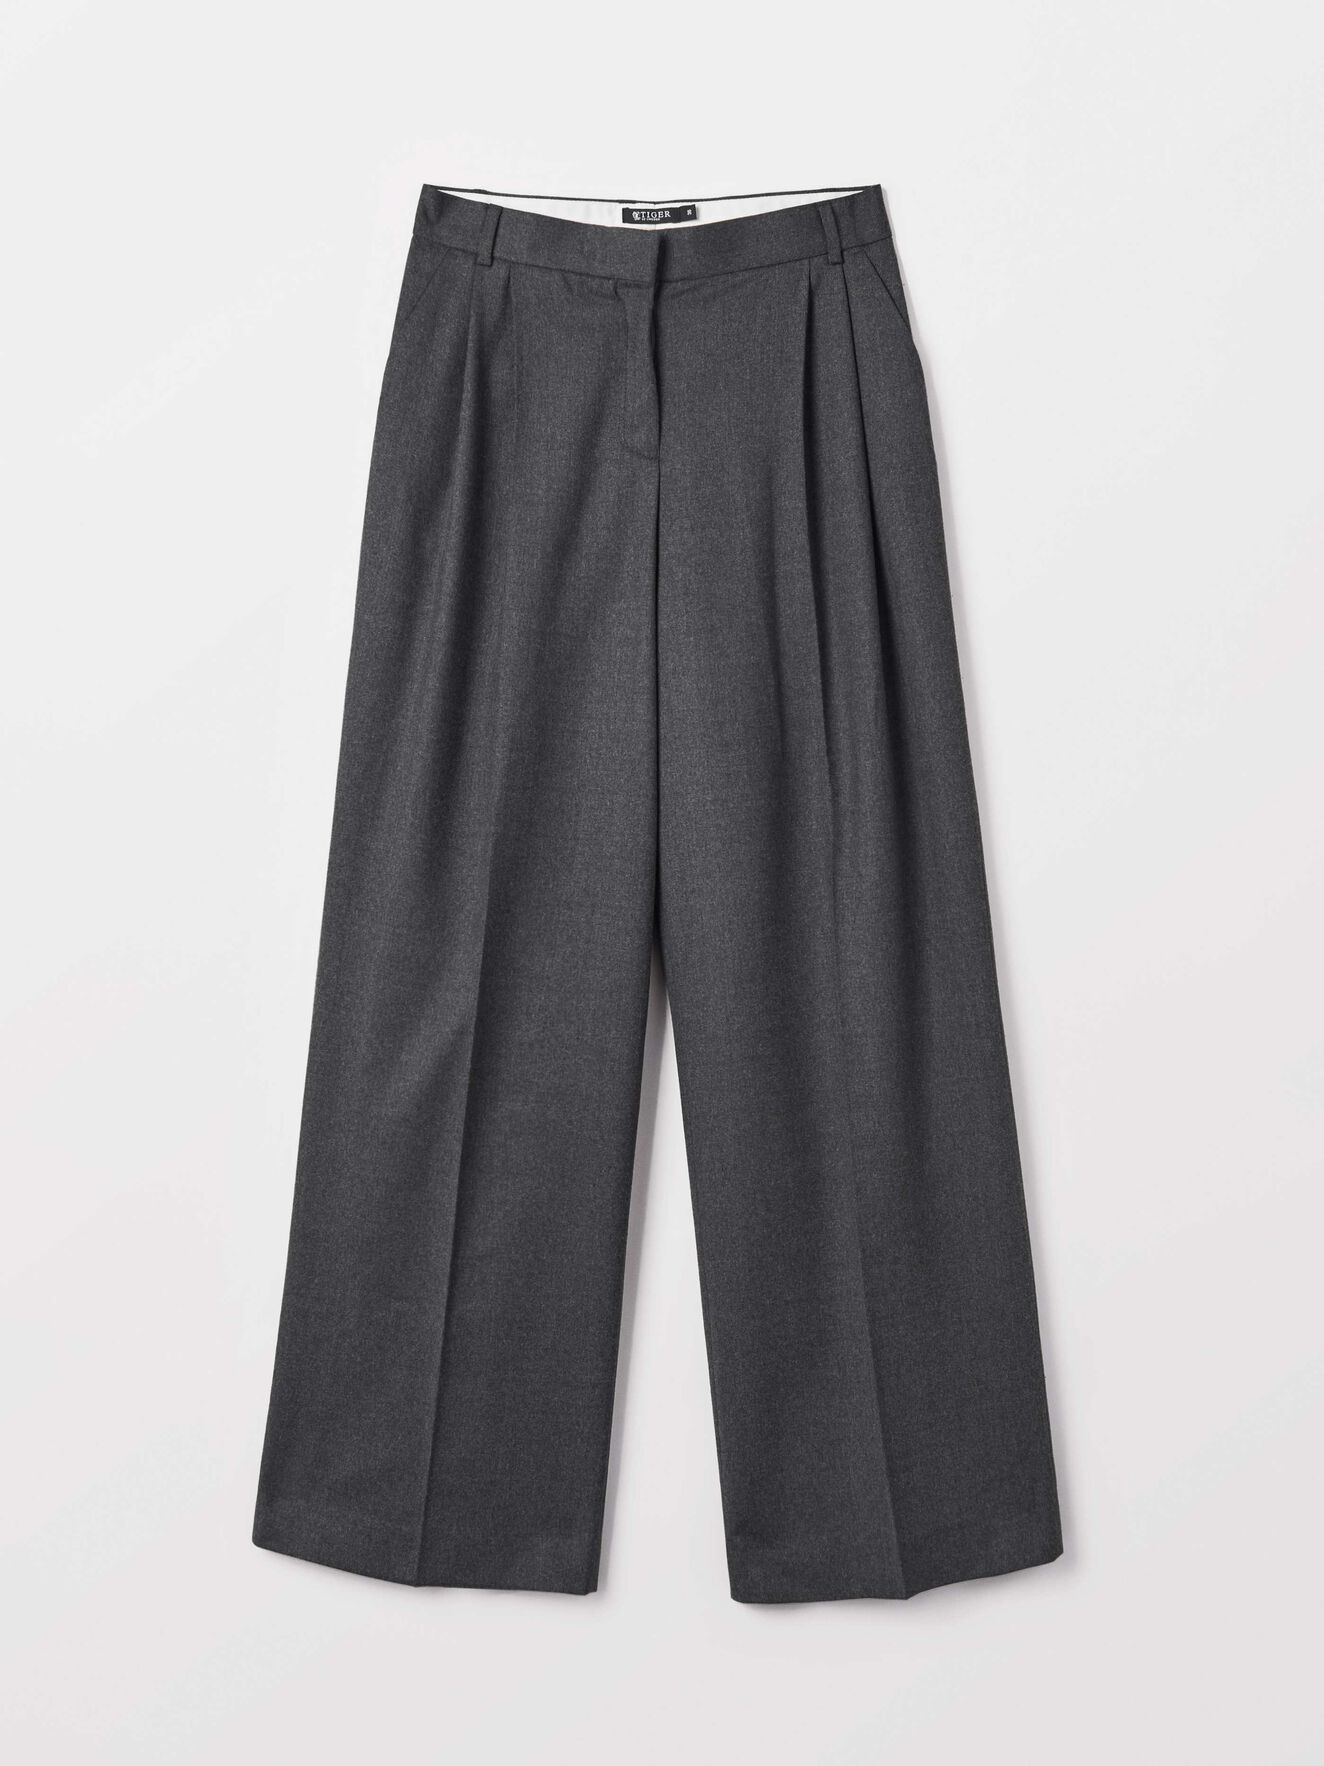 Fabiola Trousers in Med Grey Mel from Tiger of Sweden